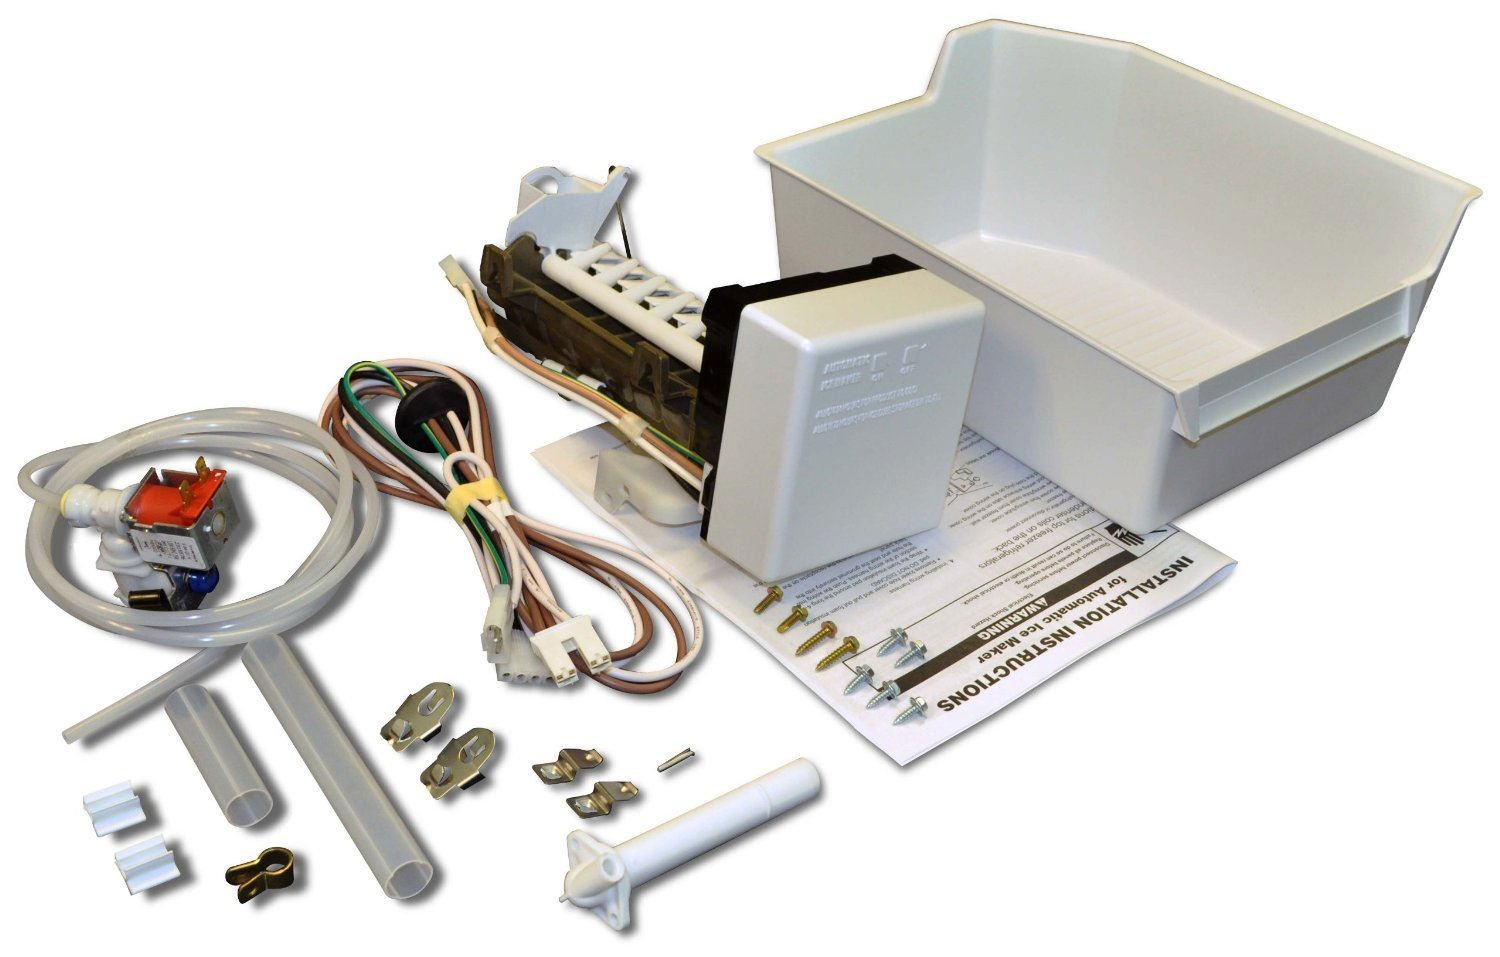 Maytag 4 Pin Wire Harness | Wiring Diagram on maytag ice maker coil, maytag ice maker spring, maytag ice maker filter, maytag ice maker motor, maytag ice maker solenoid, maytag ice maker parts diagram,